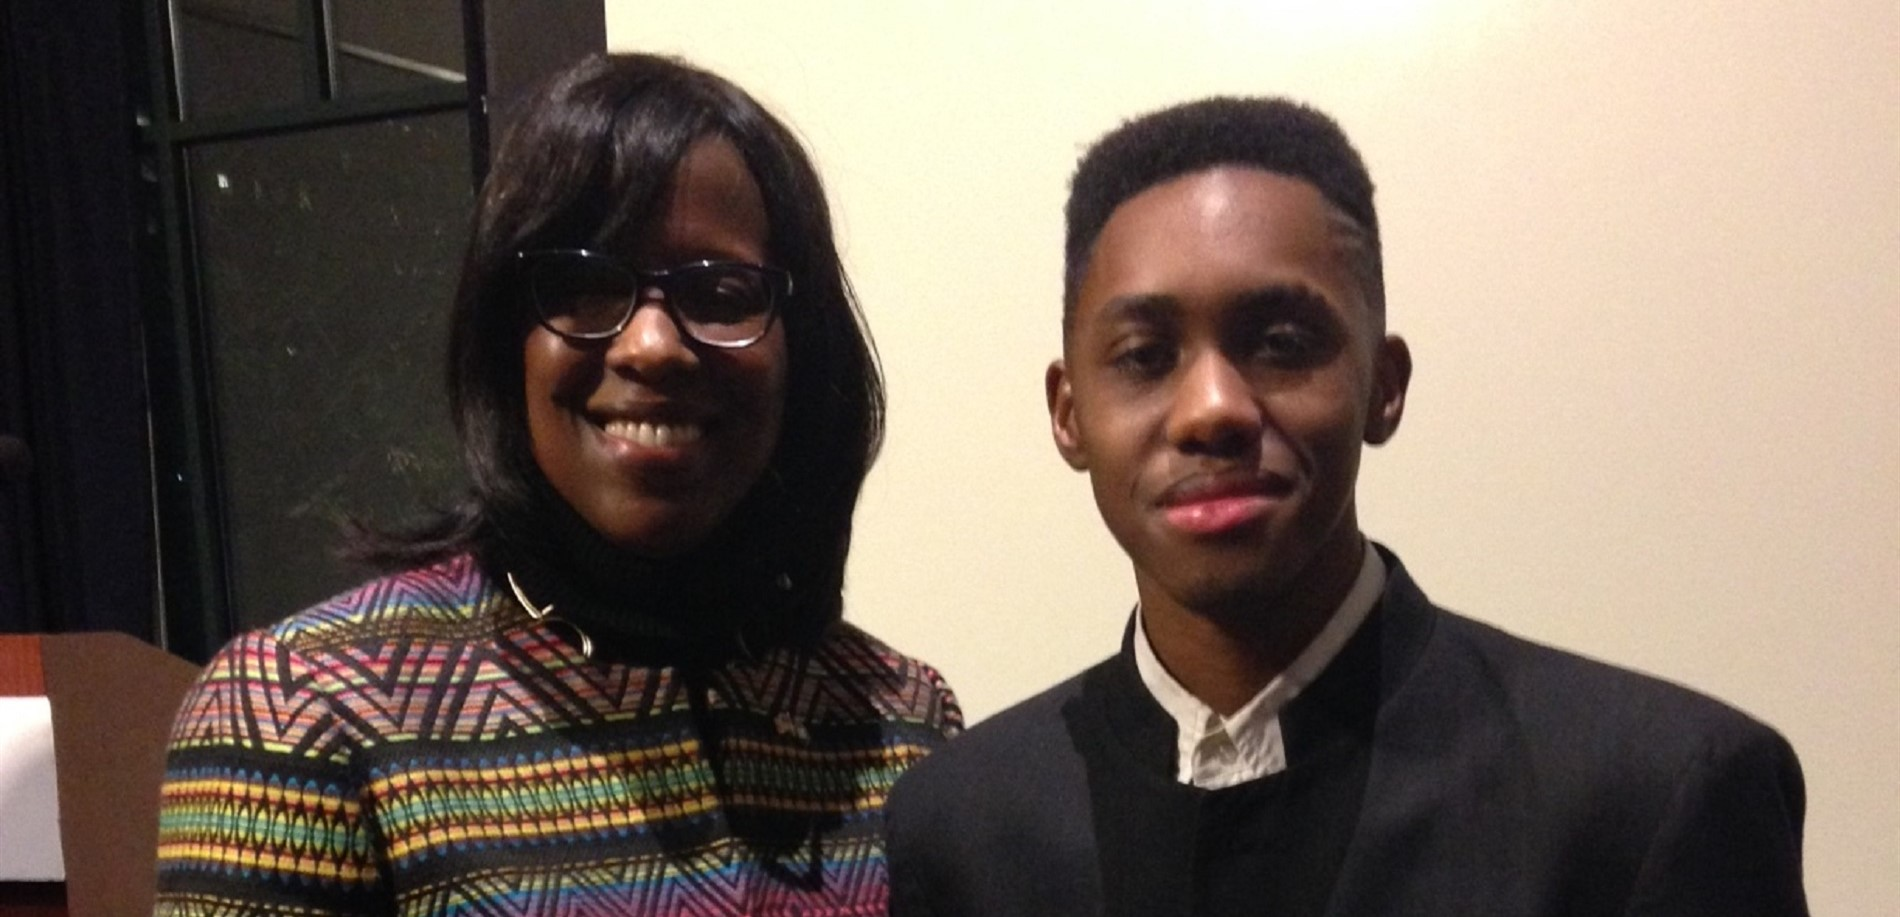 John Hardin High School student Joseph McCord was presented with the Martin Luther King Jr. Youth Leadership Award by Kentucky Lt. Gov. Jenean Hampton.